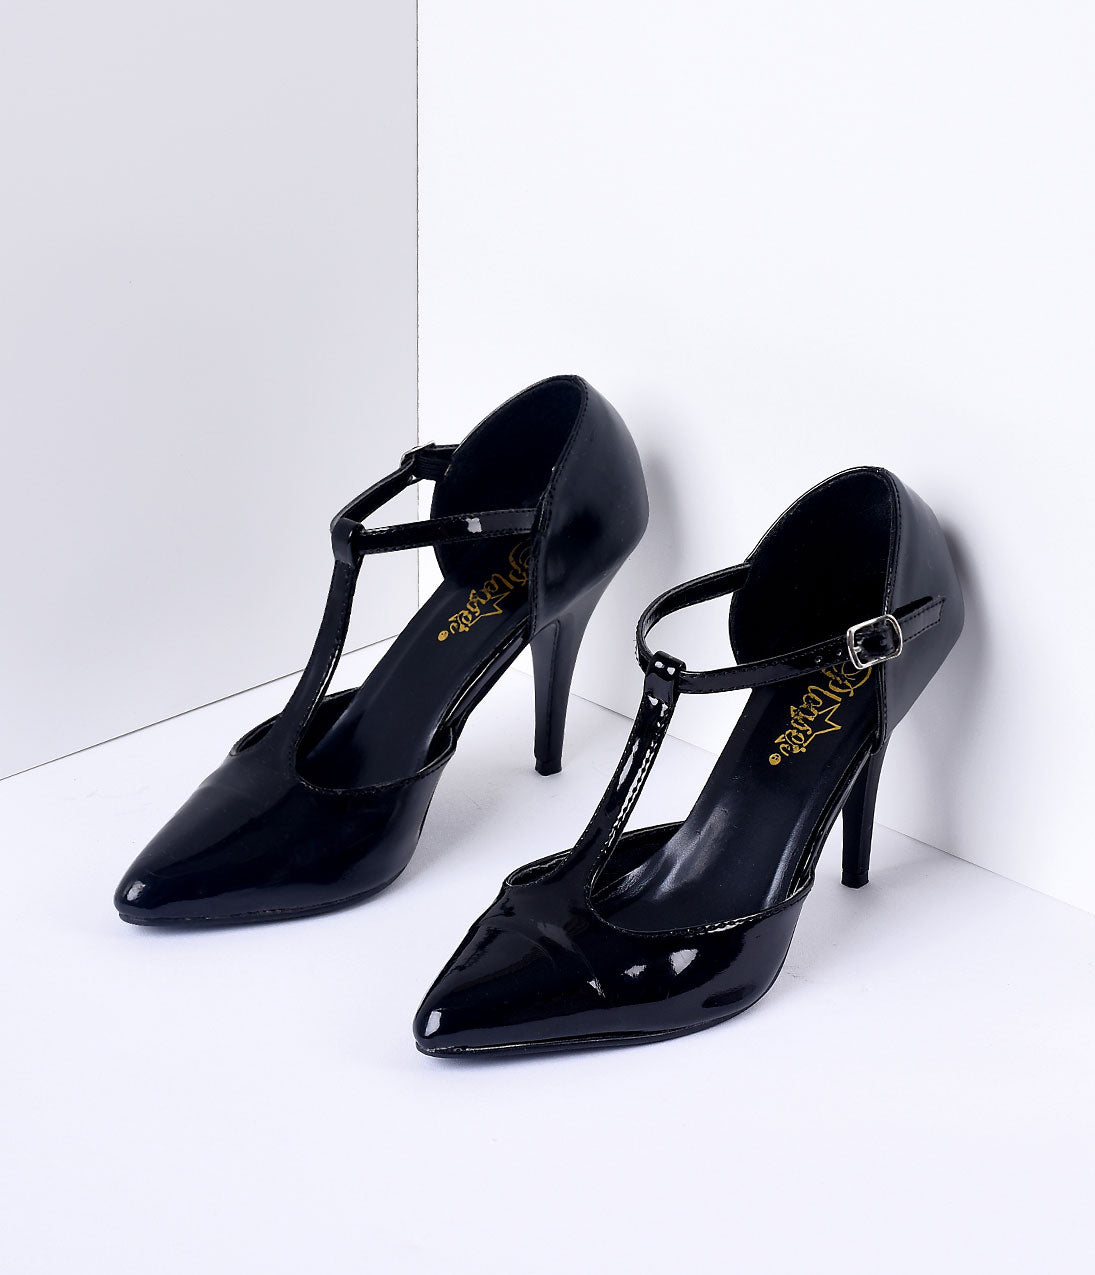 Pin Up Shoes- Heels, Pumps & Flats 1920S Style Black T-Strap Heels $68.00 AT vintagedancer.com